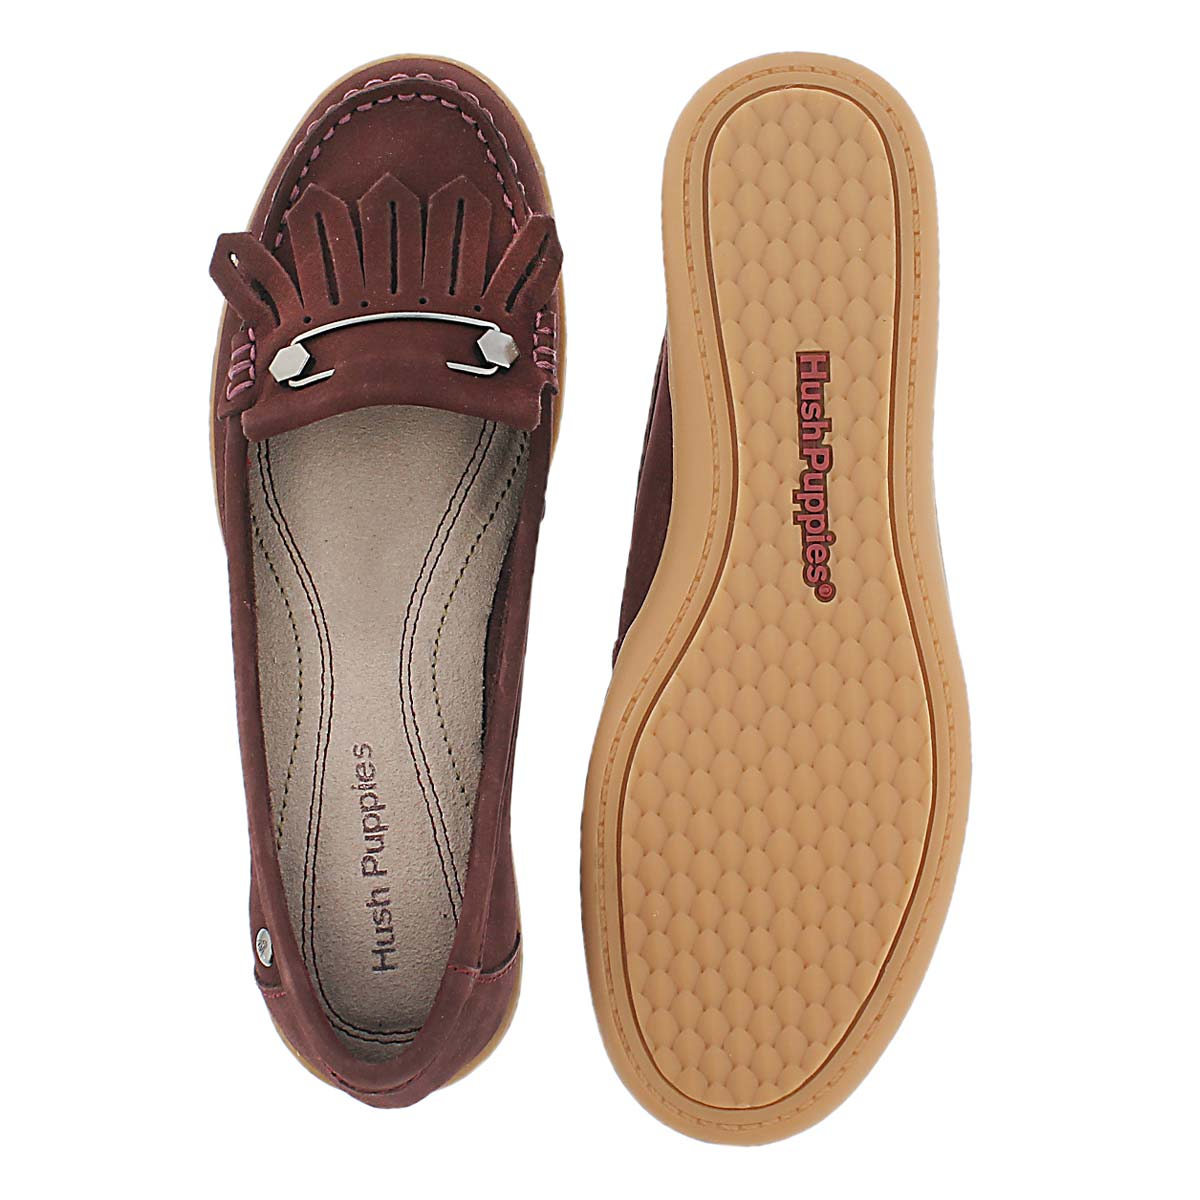 Lds Rylie Claudine wine nubuck moccasin